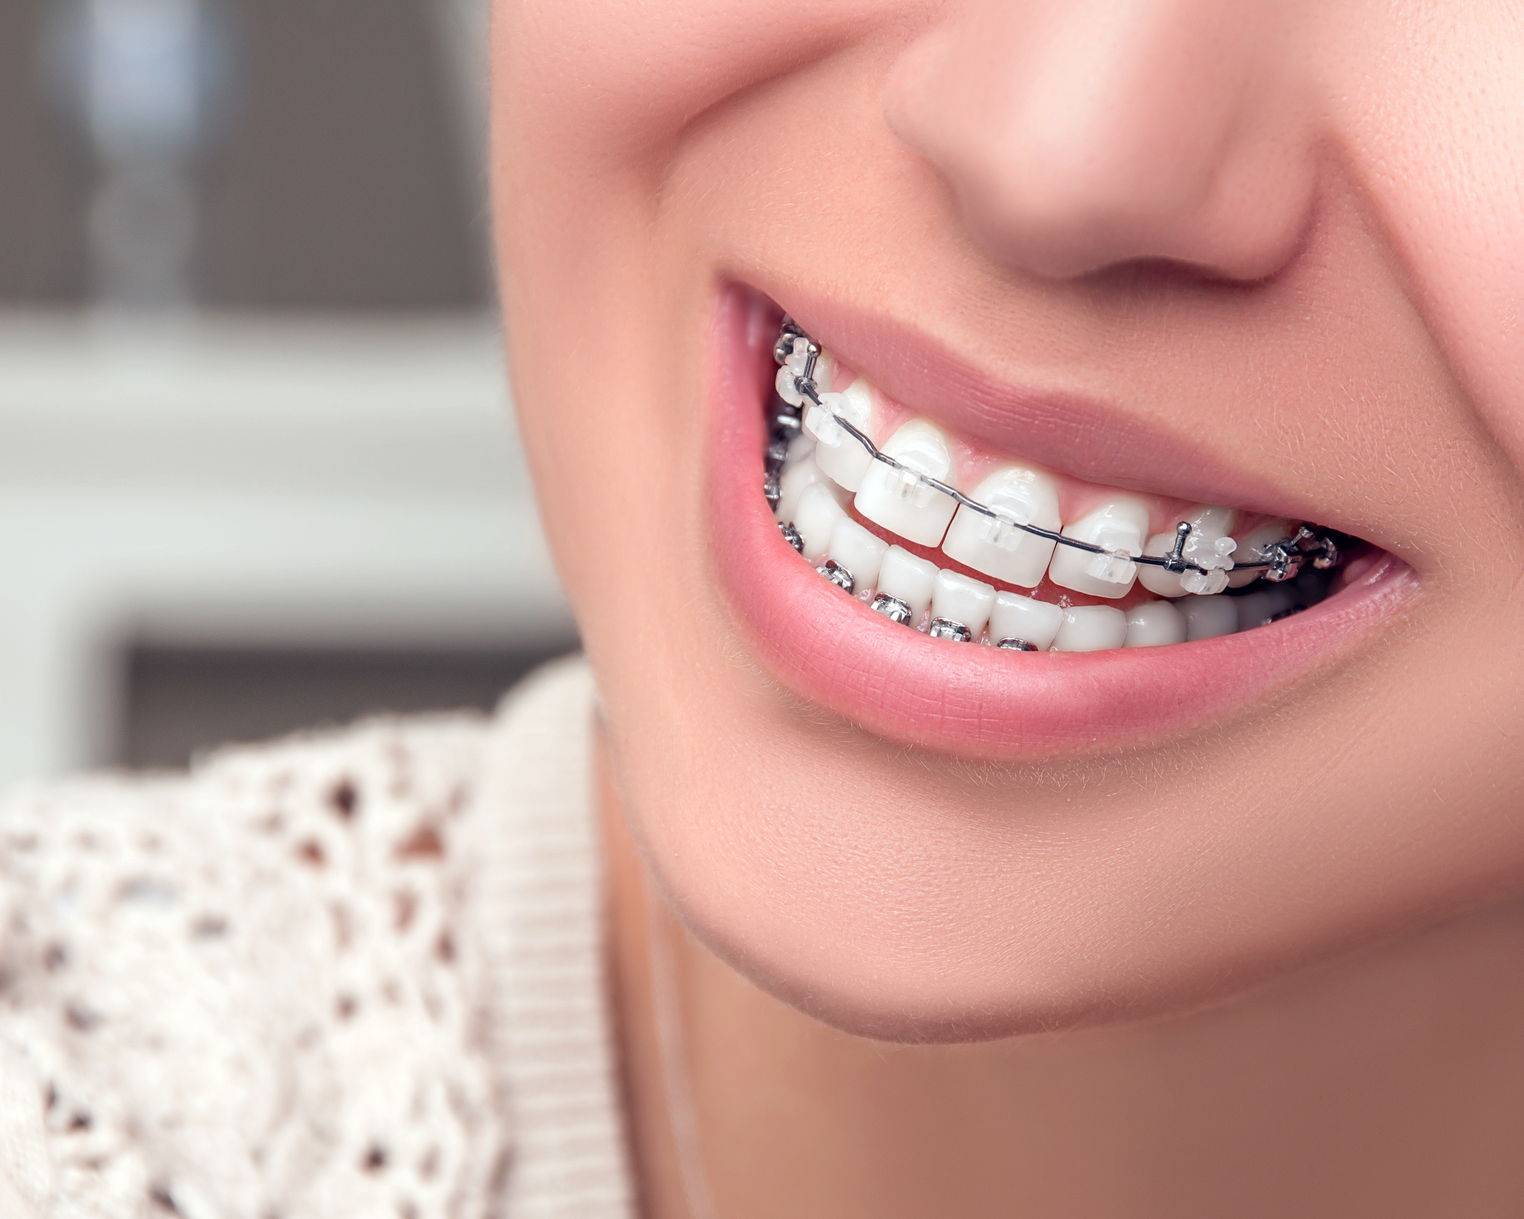 Six Month Smiles: Your Smile Restored in Just 6 Months?